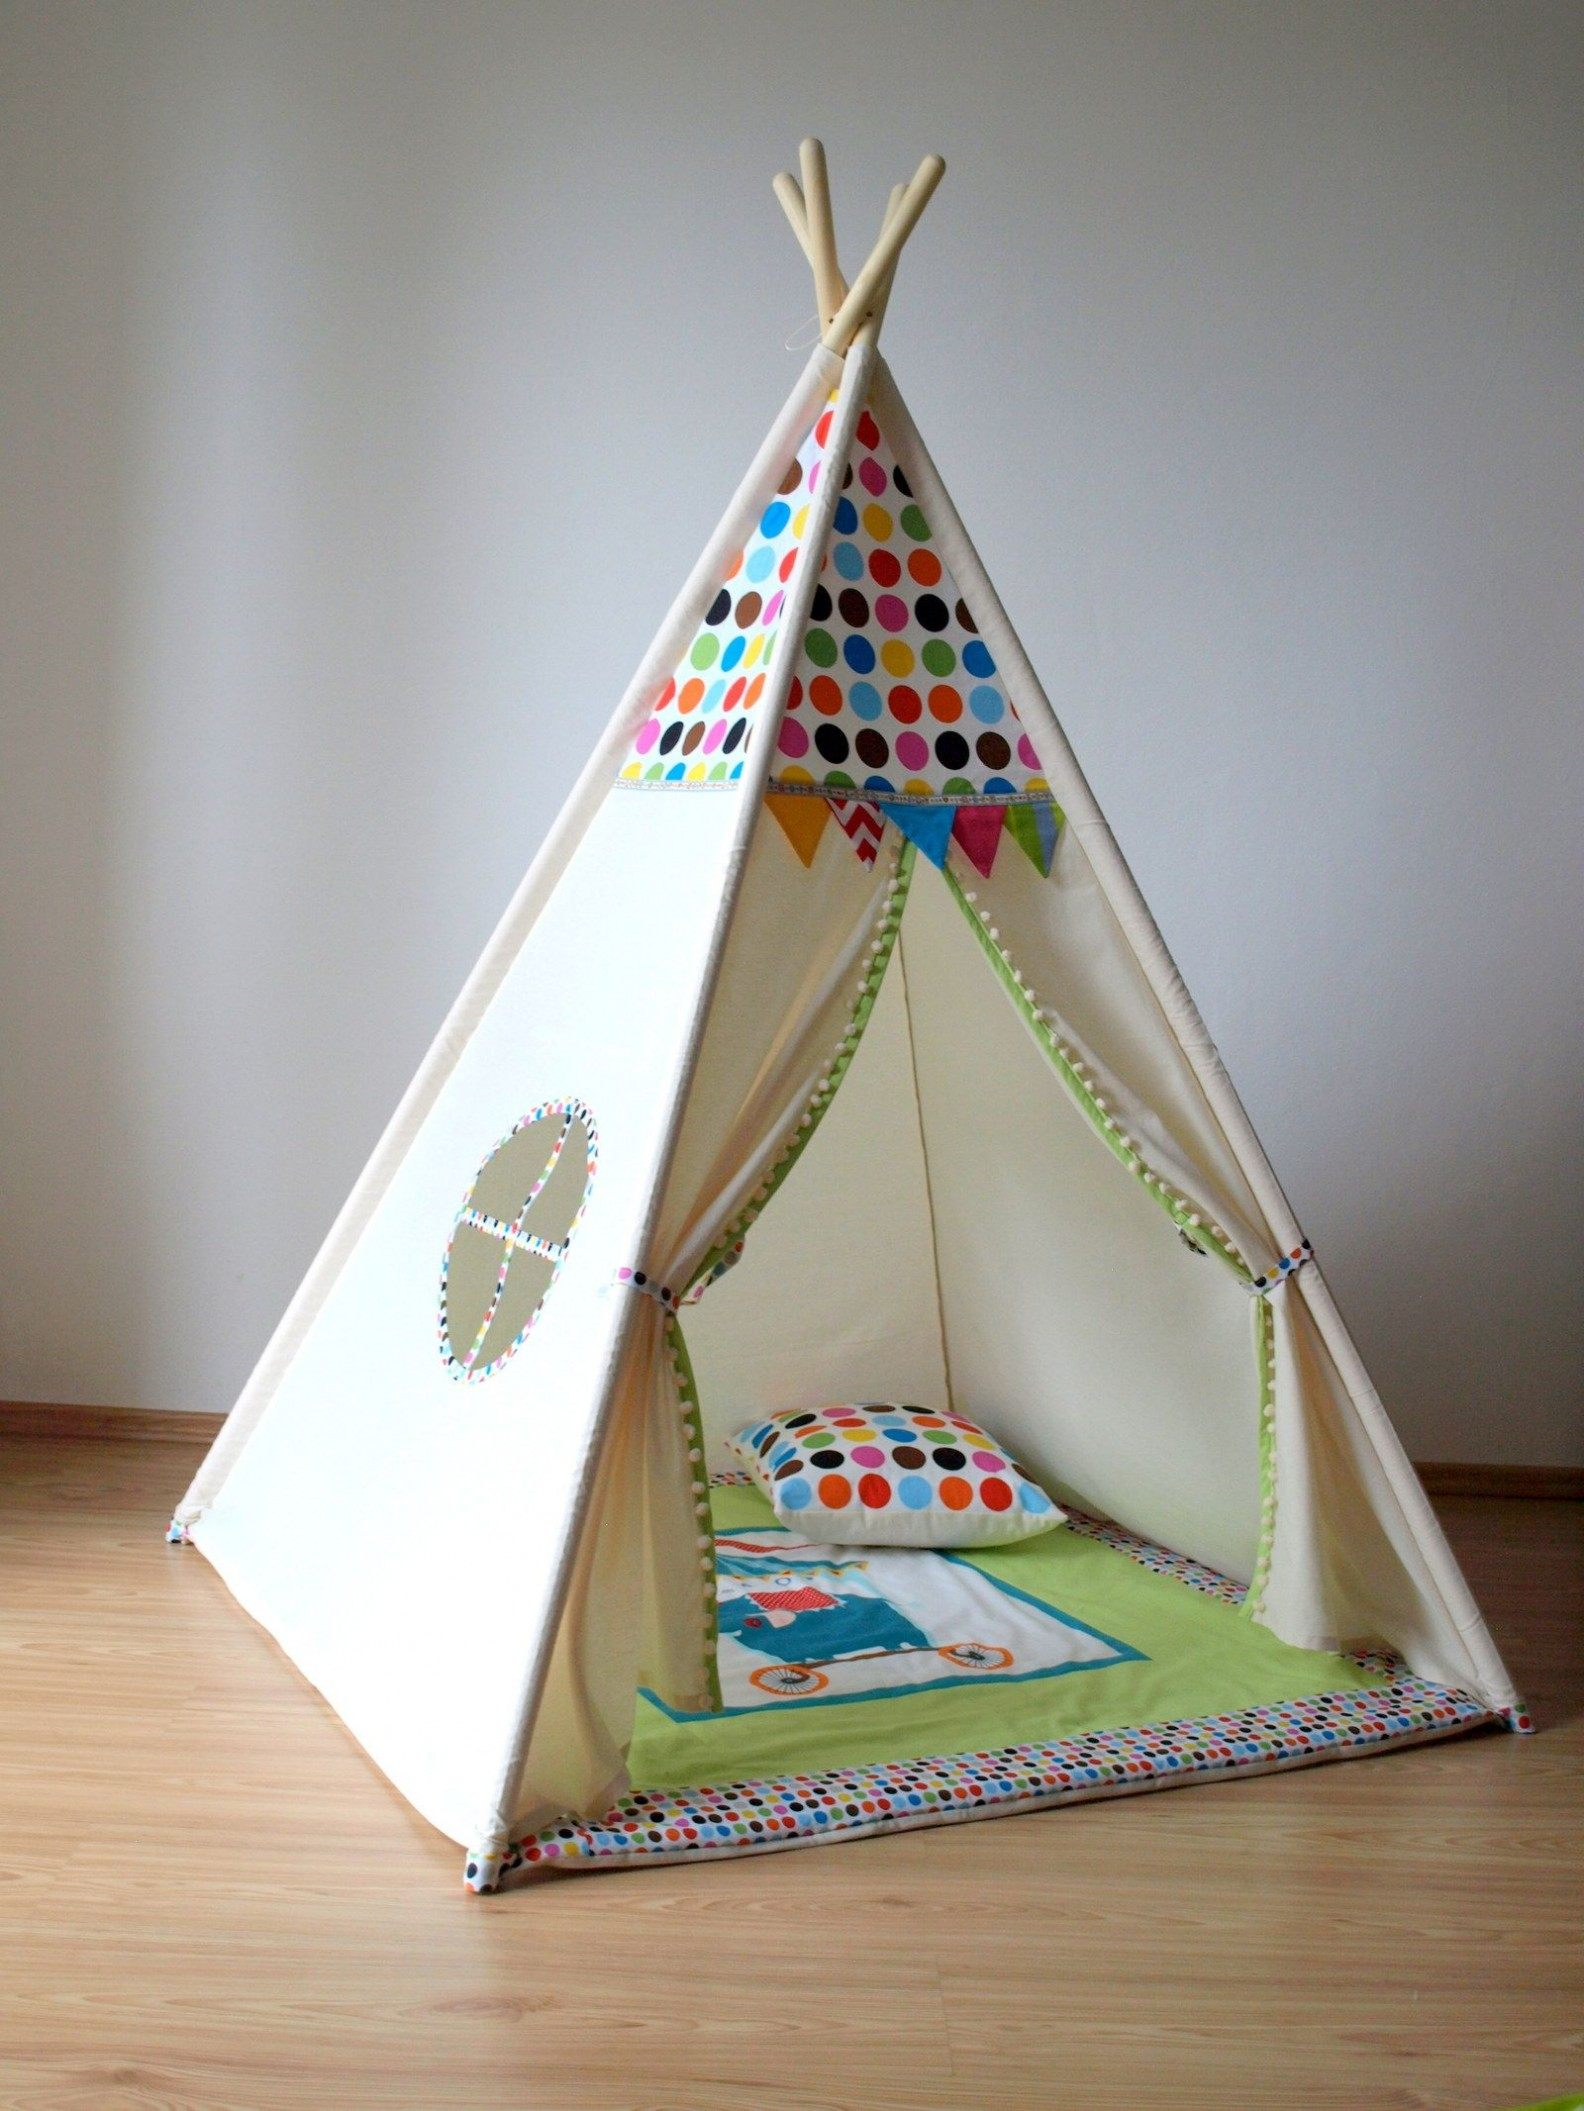 Lit Enfant Tipi Magnifique Lesmeubles Ready to Ship White Teepee Tent Childrens Teepee Canvas